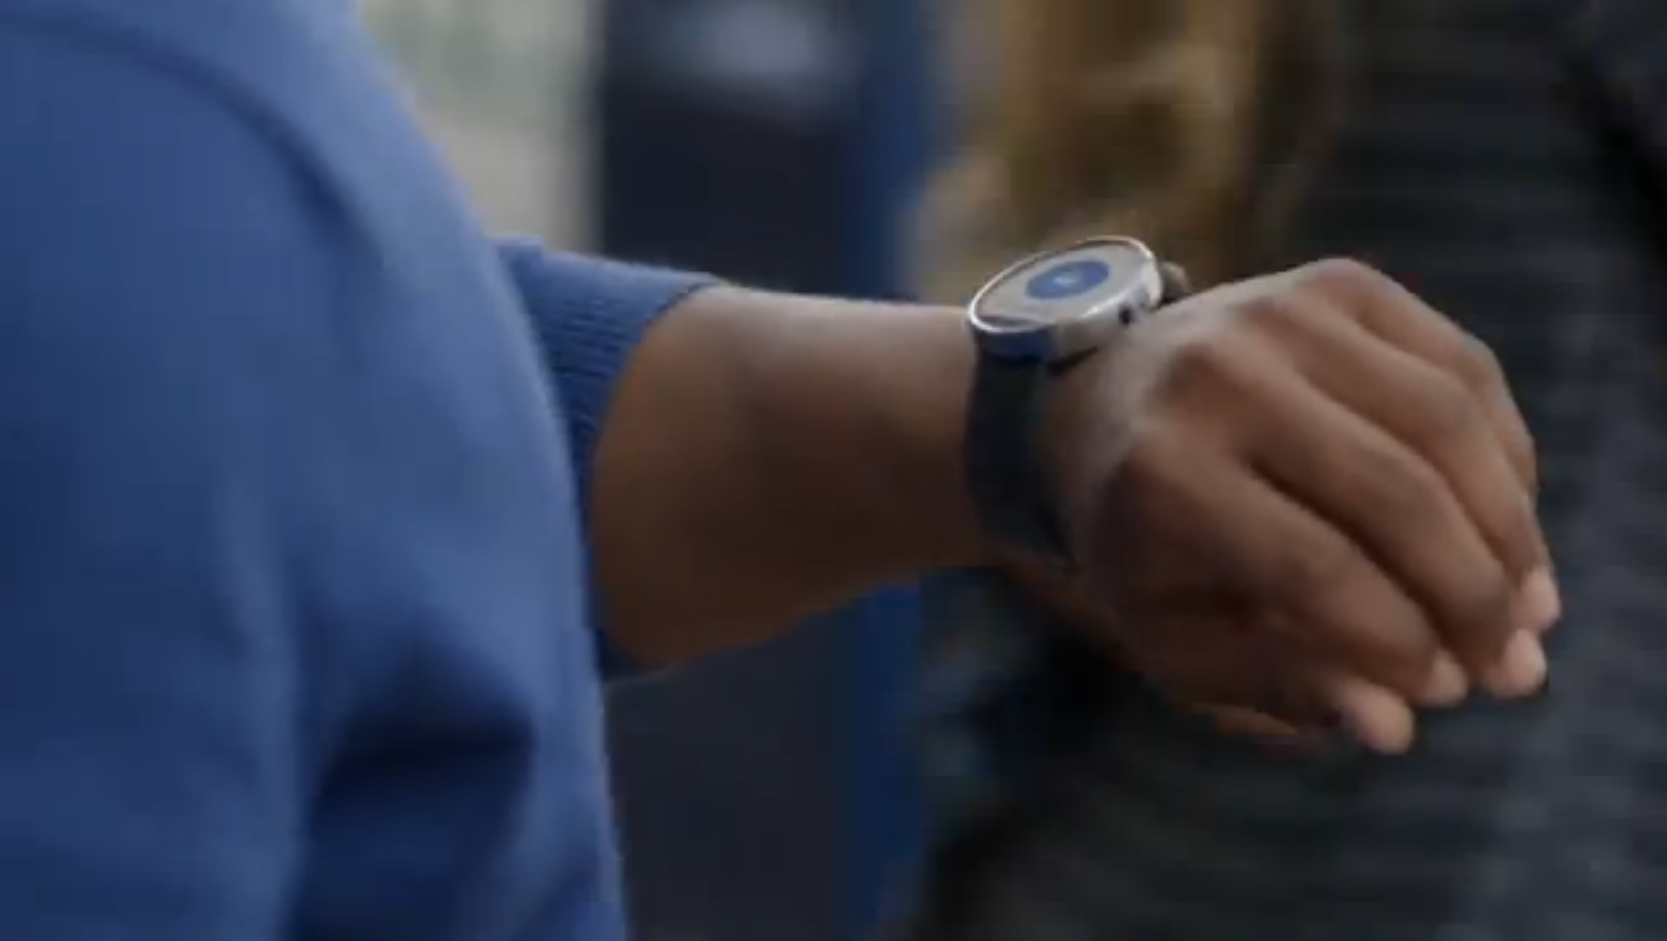 While the video showed examples, Google plans to partner with electronics firms to make the Android smartwatch a reality. (Image courtesy: Google)